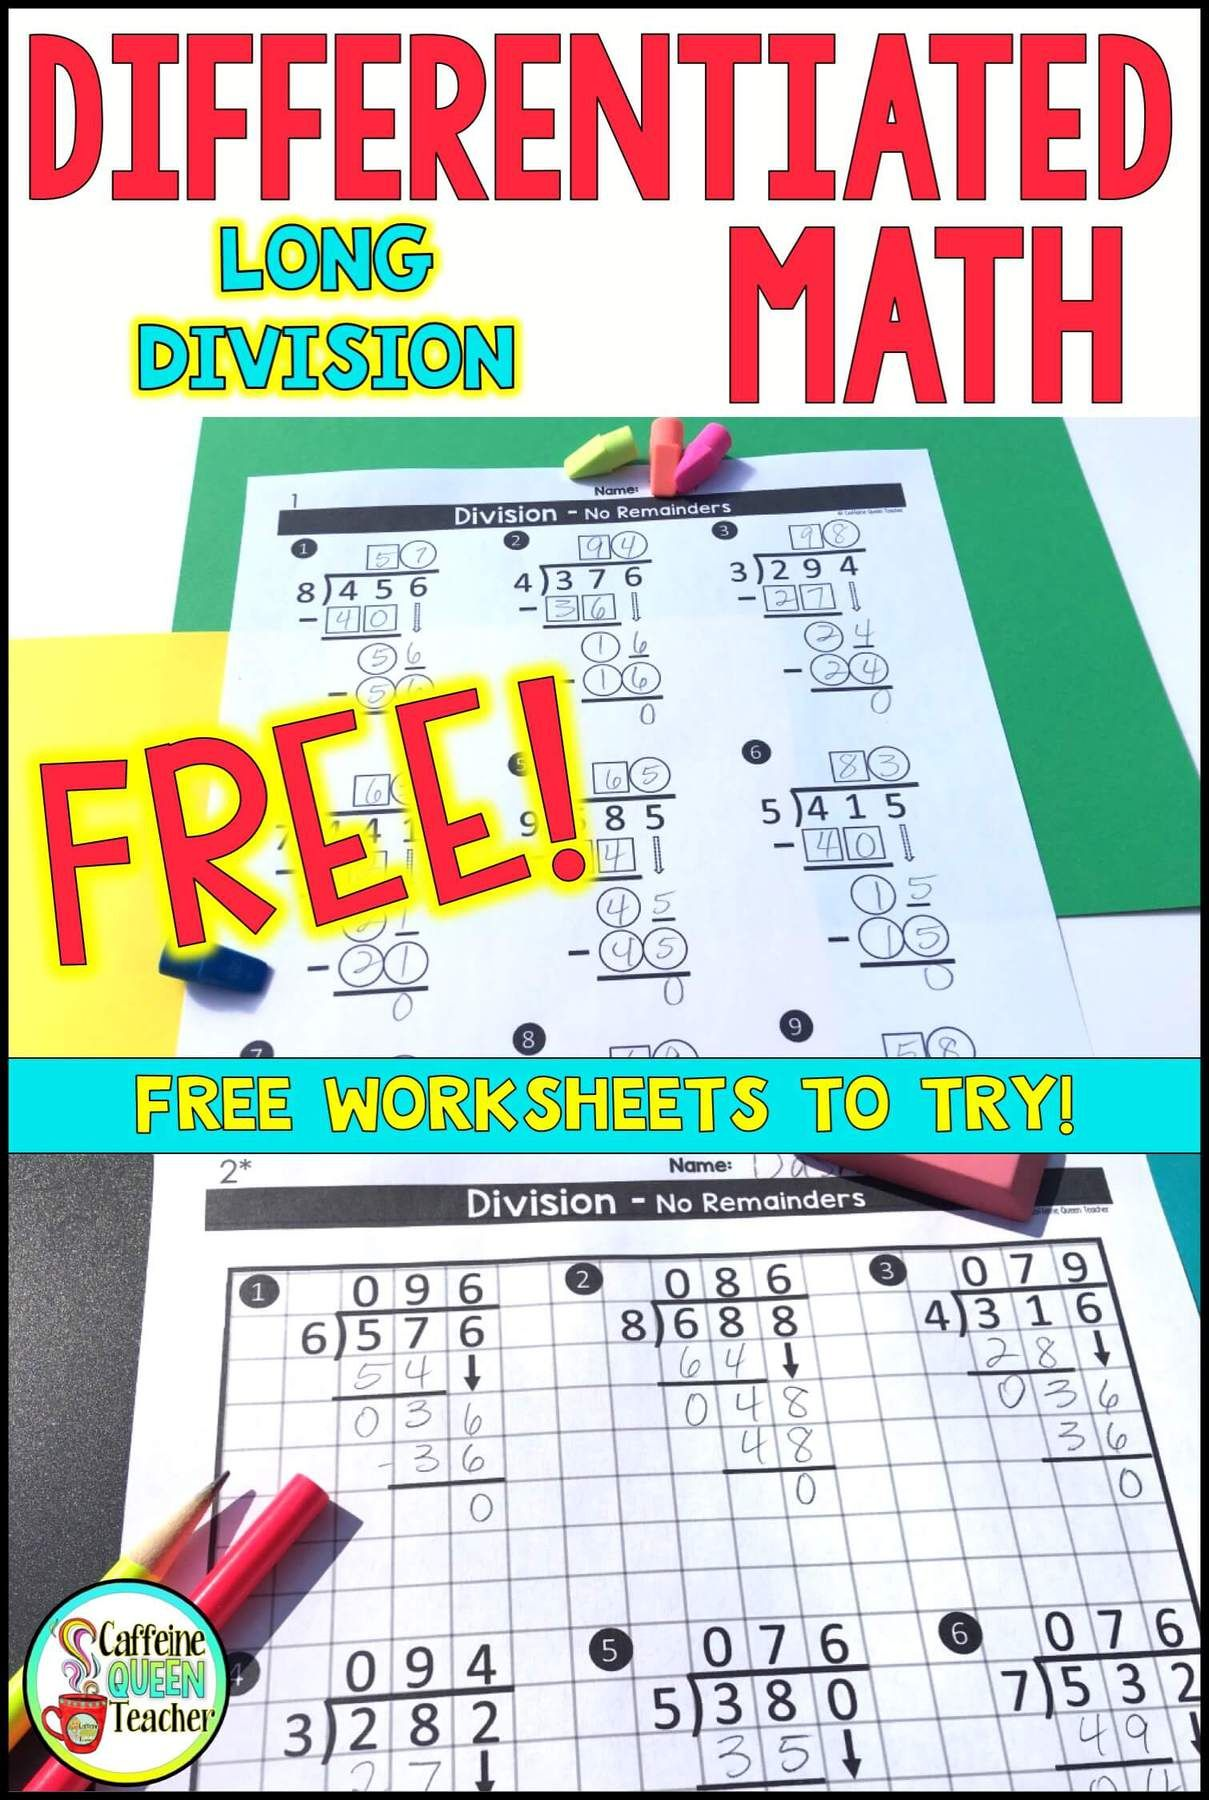 Differentiated Long Division Worksheets For Free In